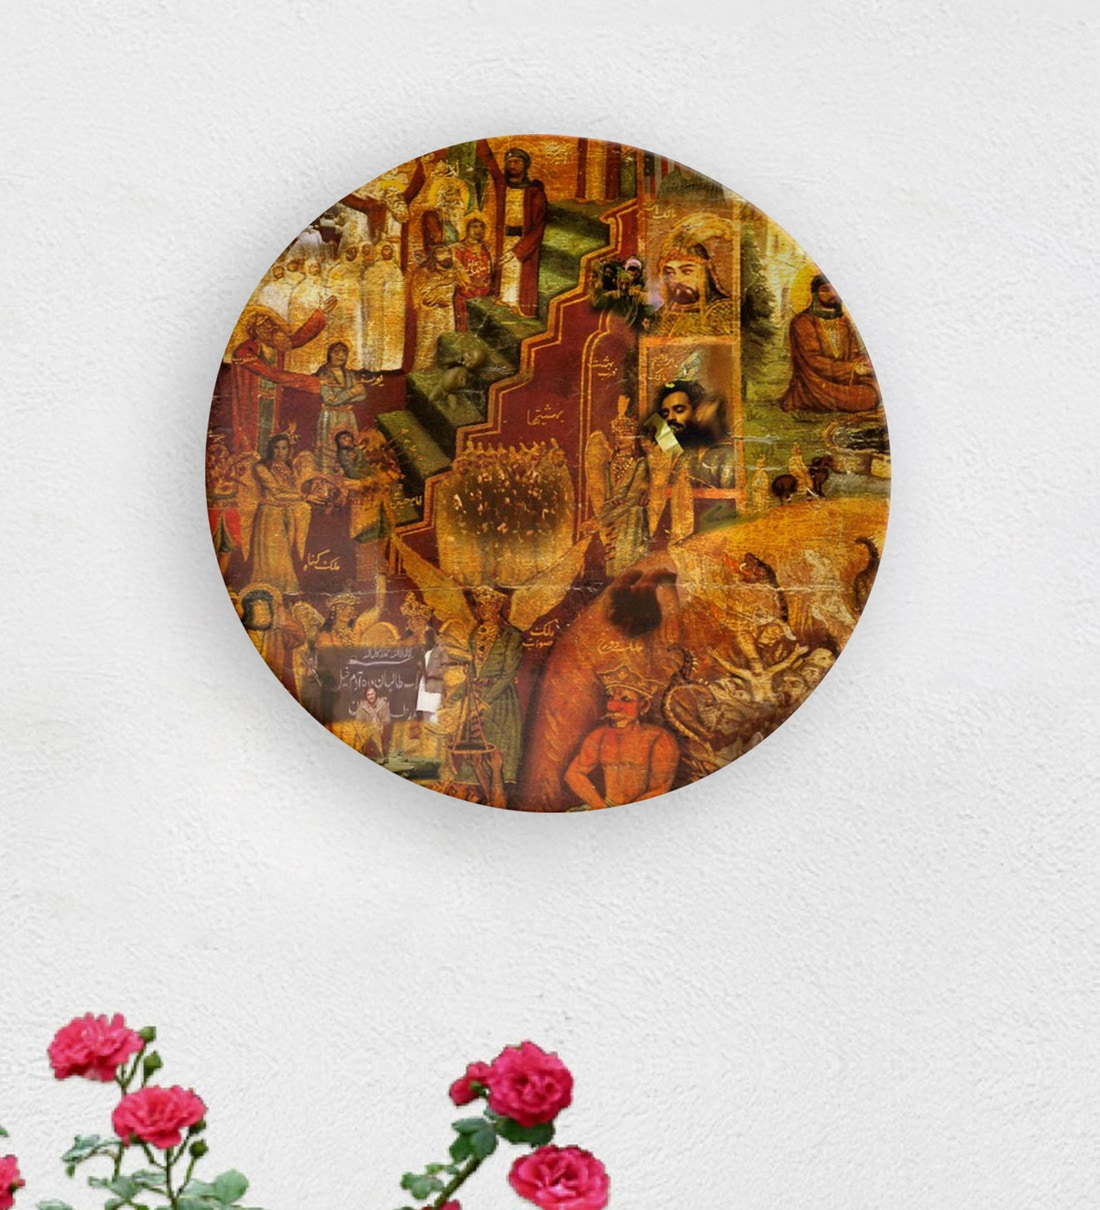 Buy Multicolour Ceramic Artistic Painting Decorative Wall Plate By Quirk India Online Wall Plates Wall Art Home Decor Pepperfry Product